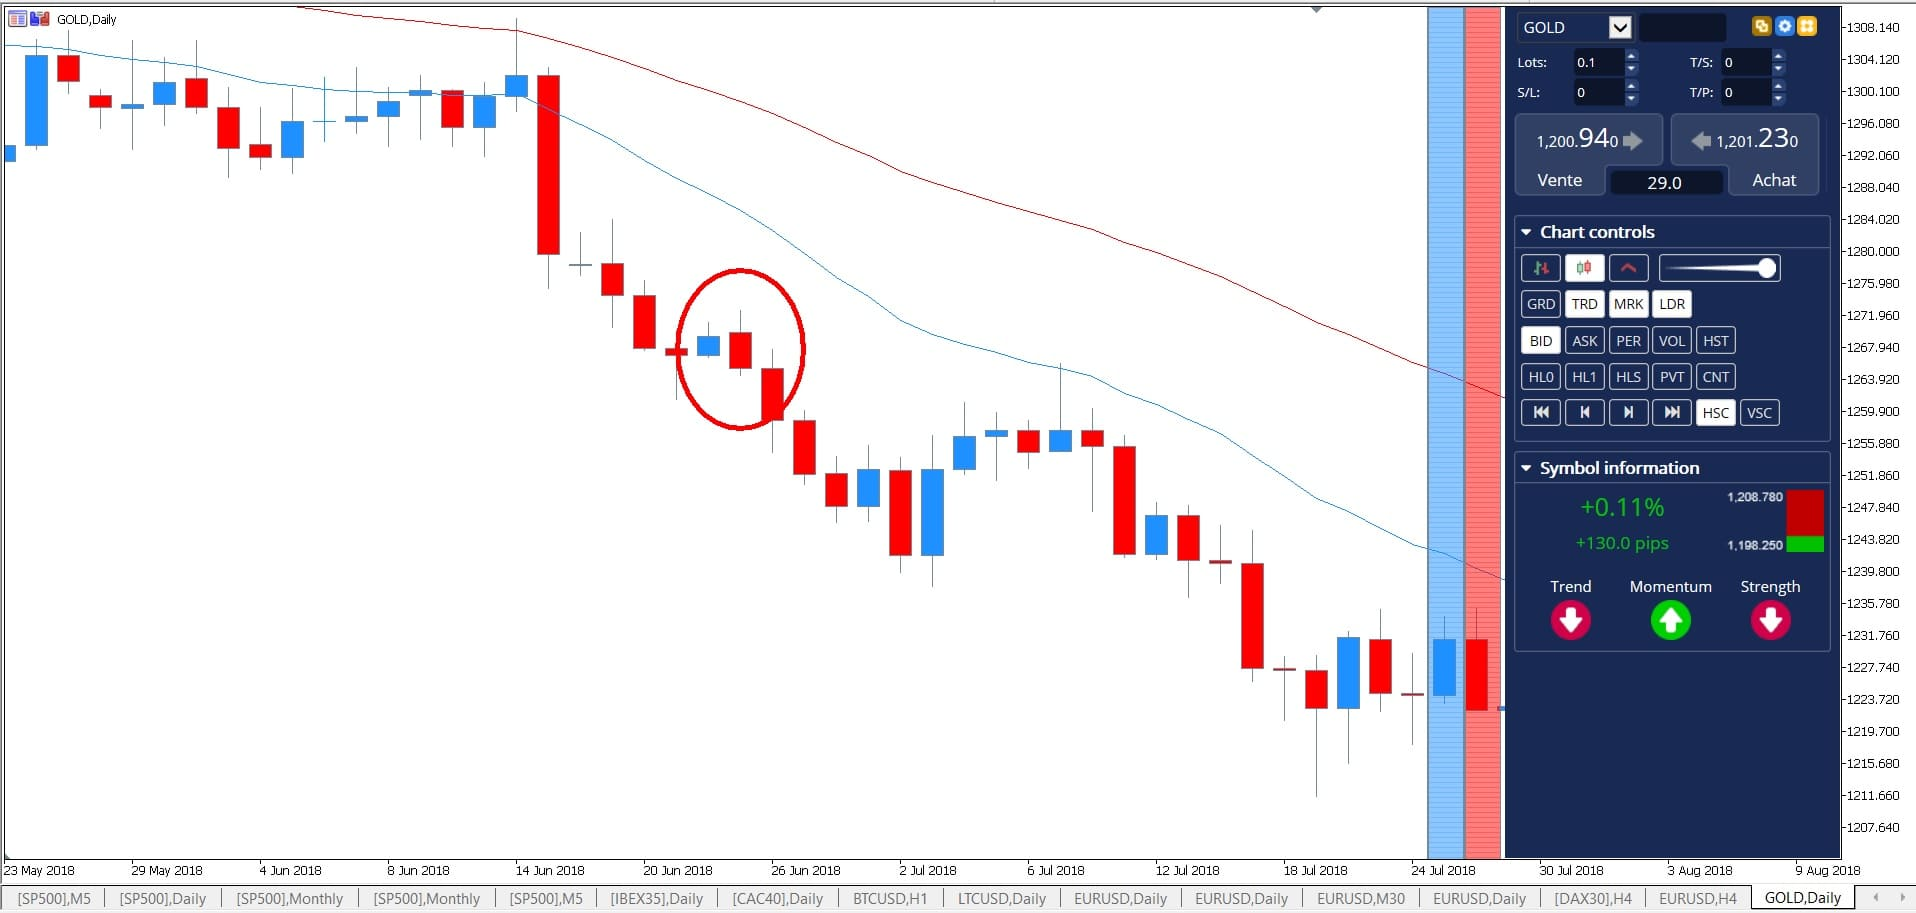 engulfing candle - bullish engulfing vs bearish engulfing